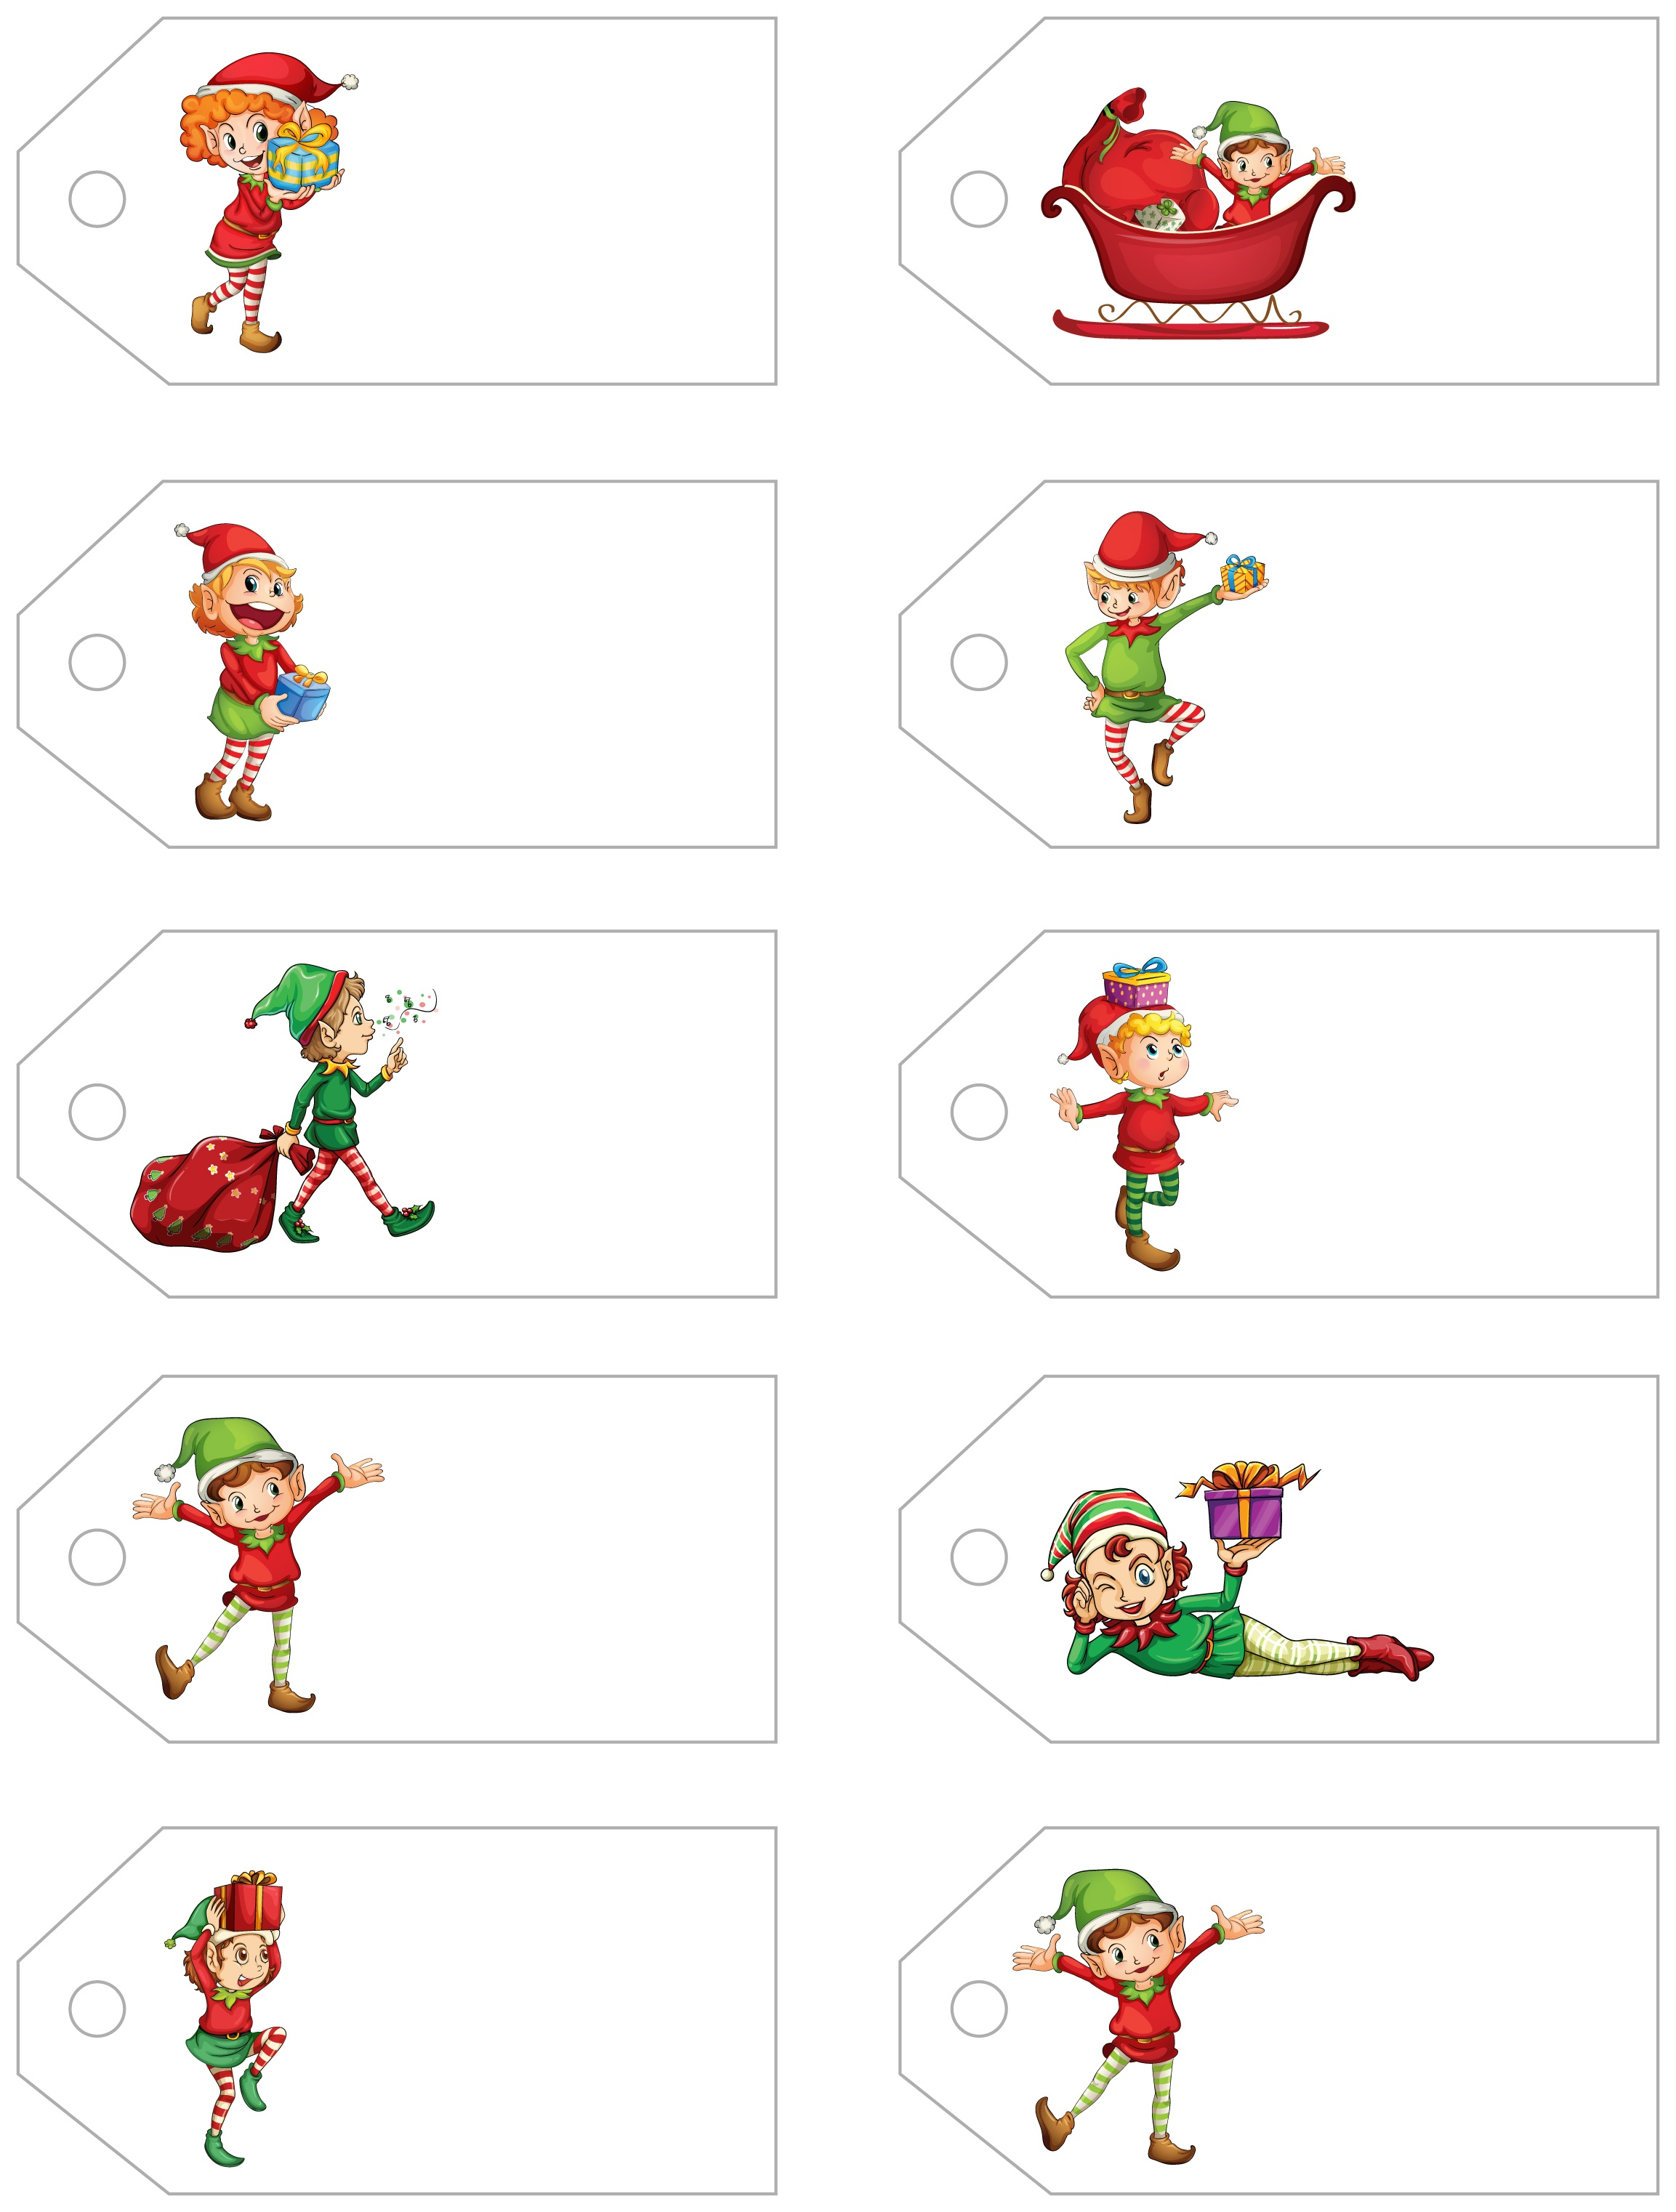 Santa's Little Gift To You! Free Printable Gift Tags And Labels - Free Printable Holiday Gift Labels